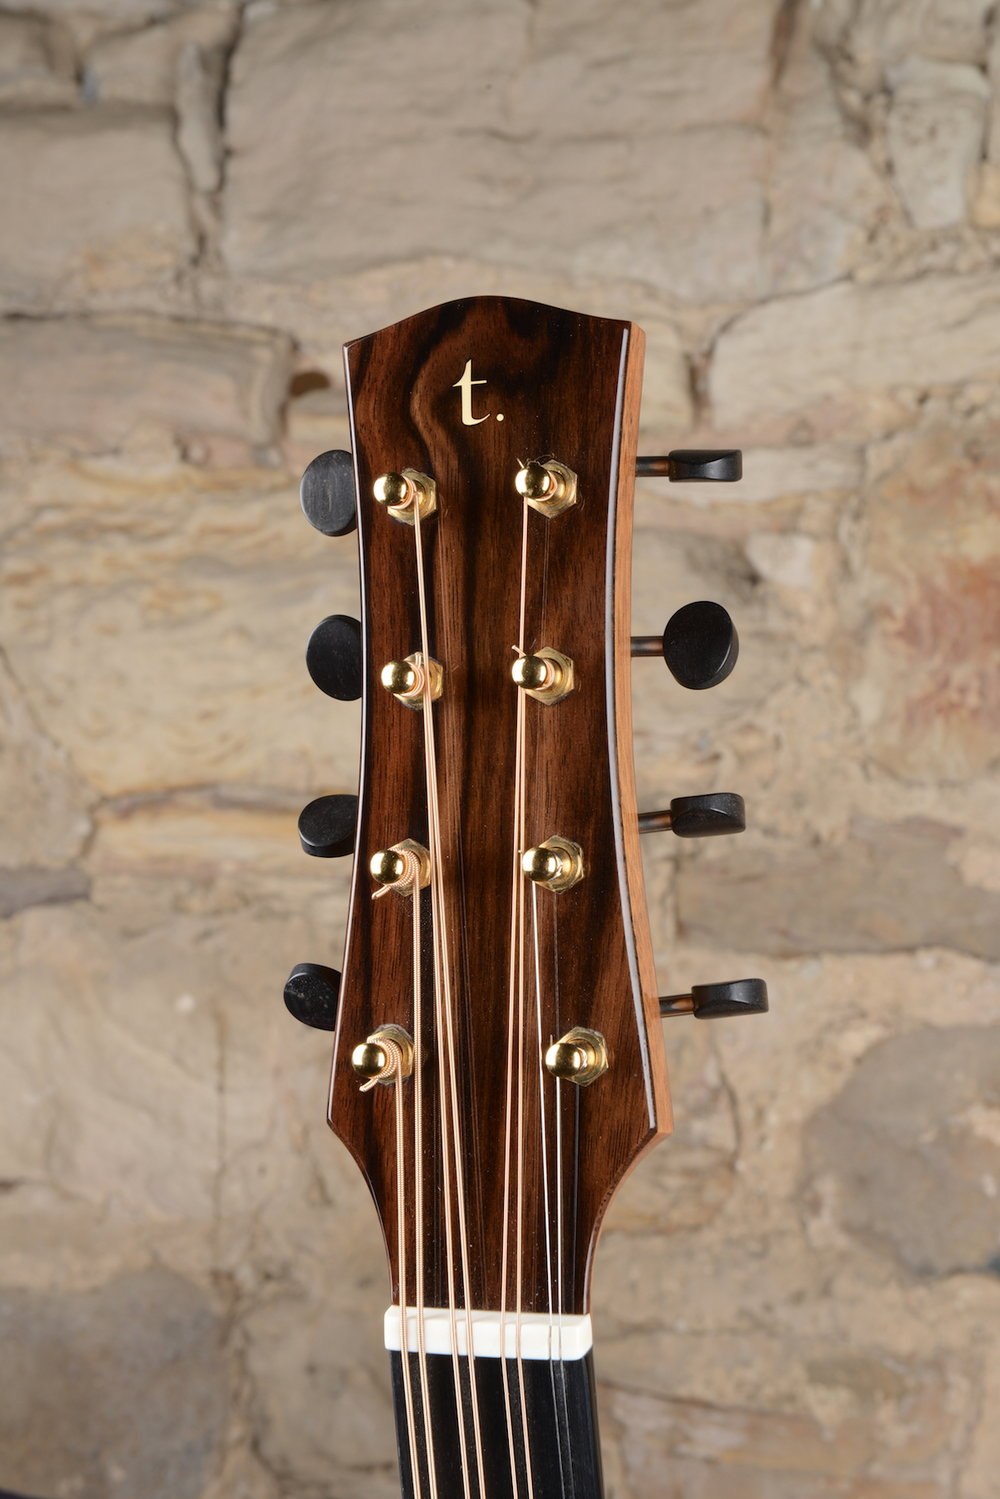 Ebony headstock front and back with straight pull headstock shape design